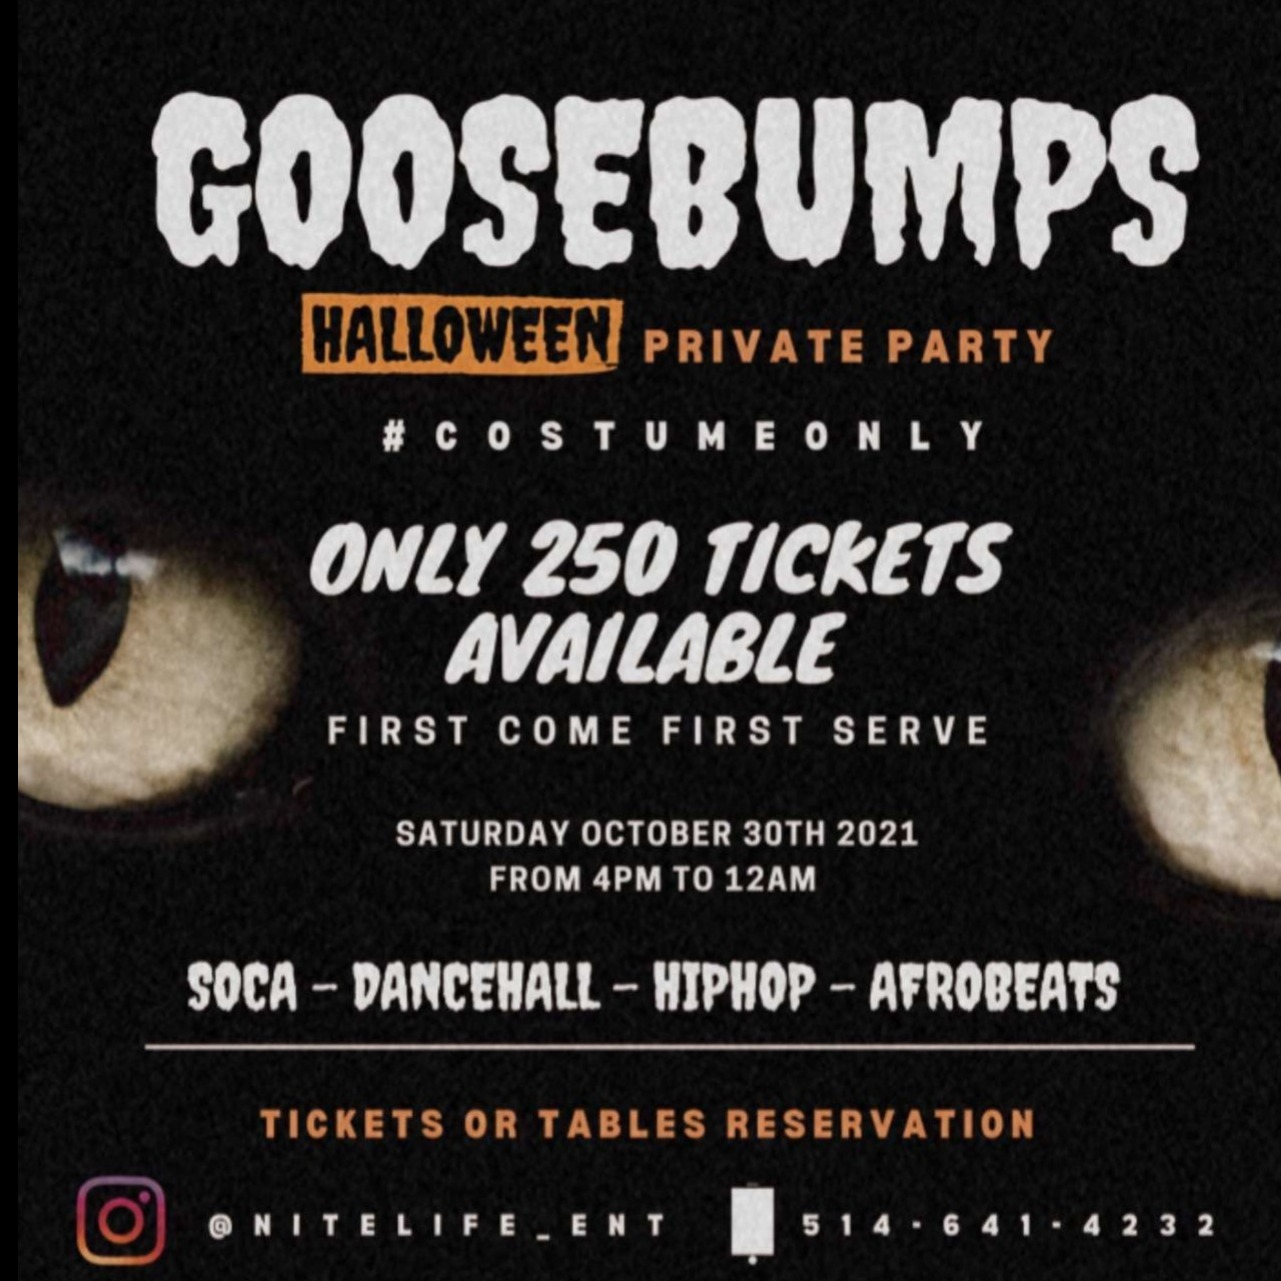 GOOSEBUMPS HALLOWEEN PRIVATE PARTY